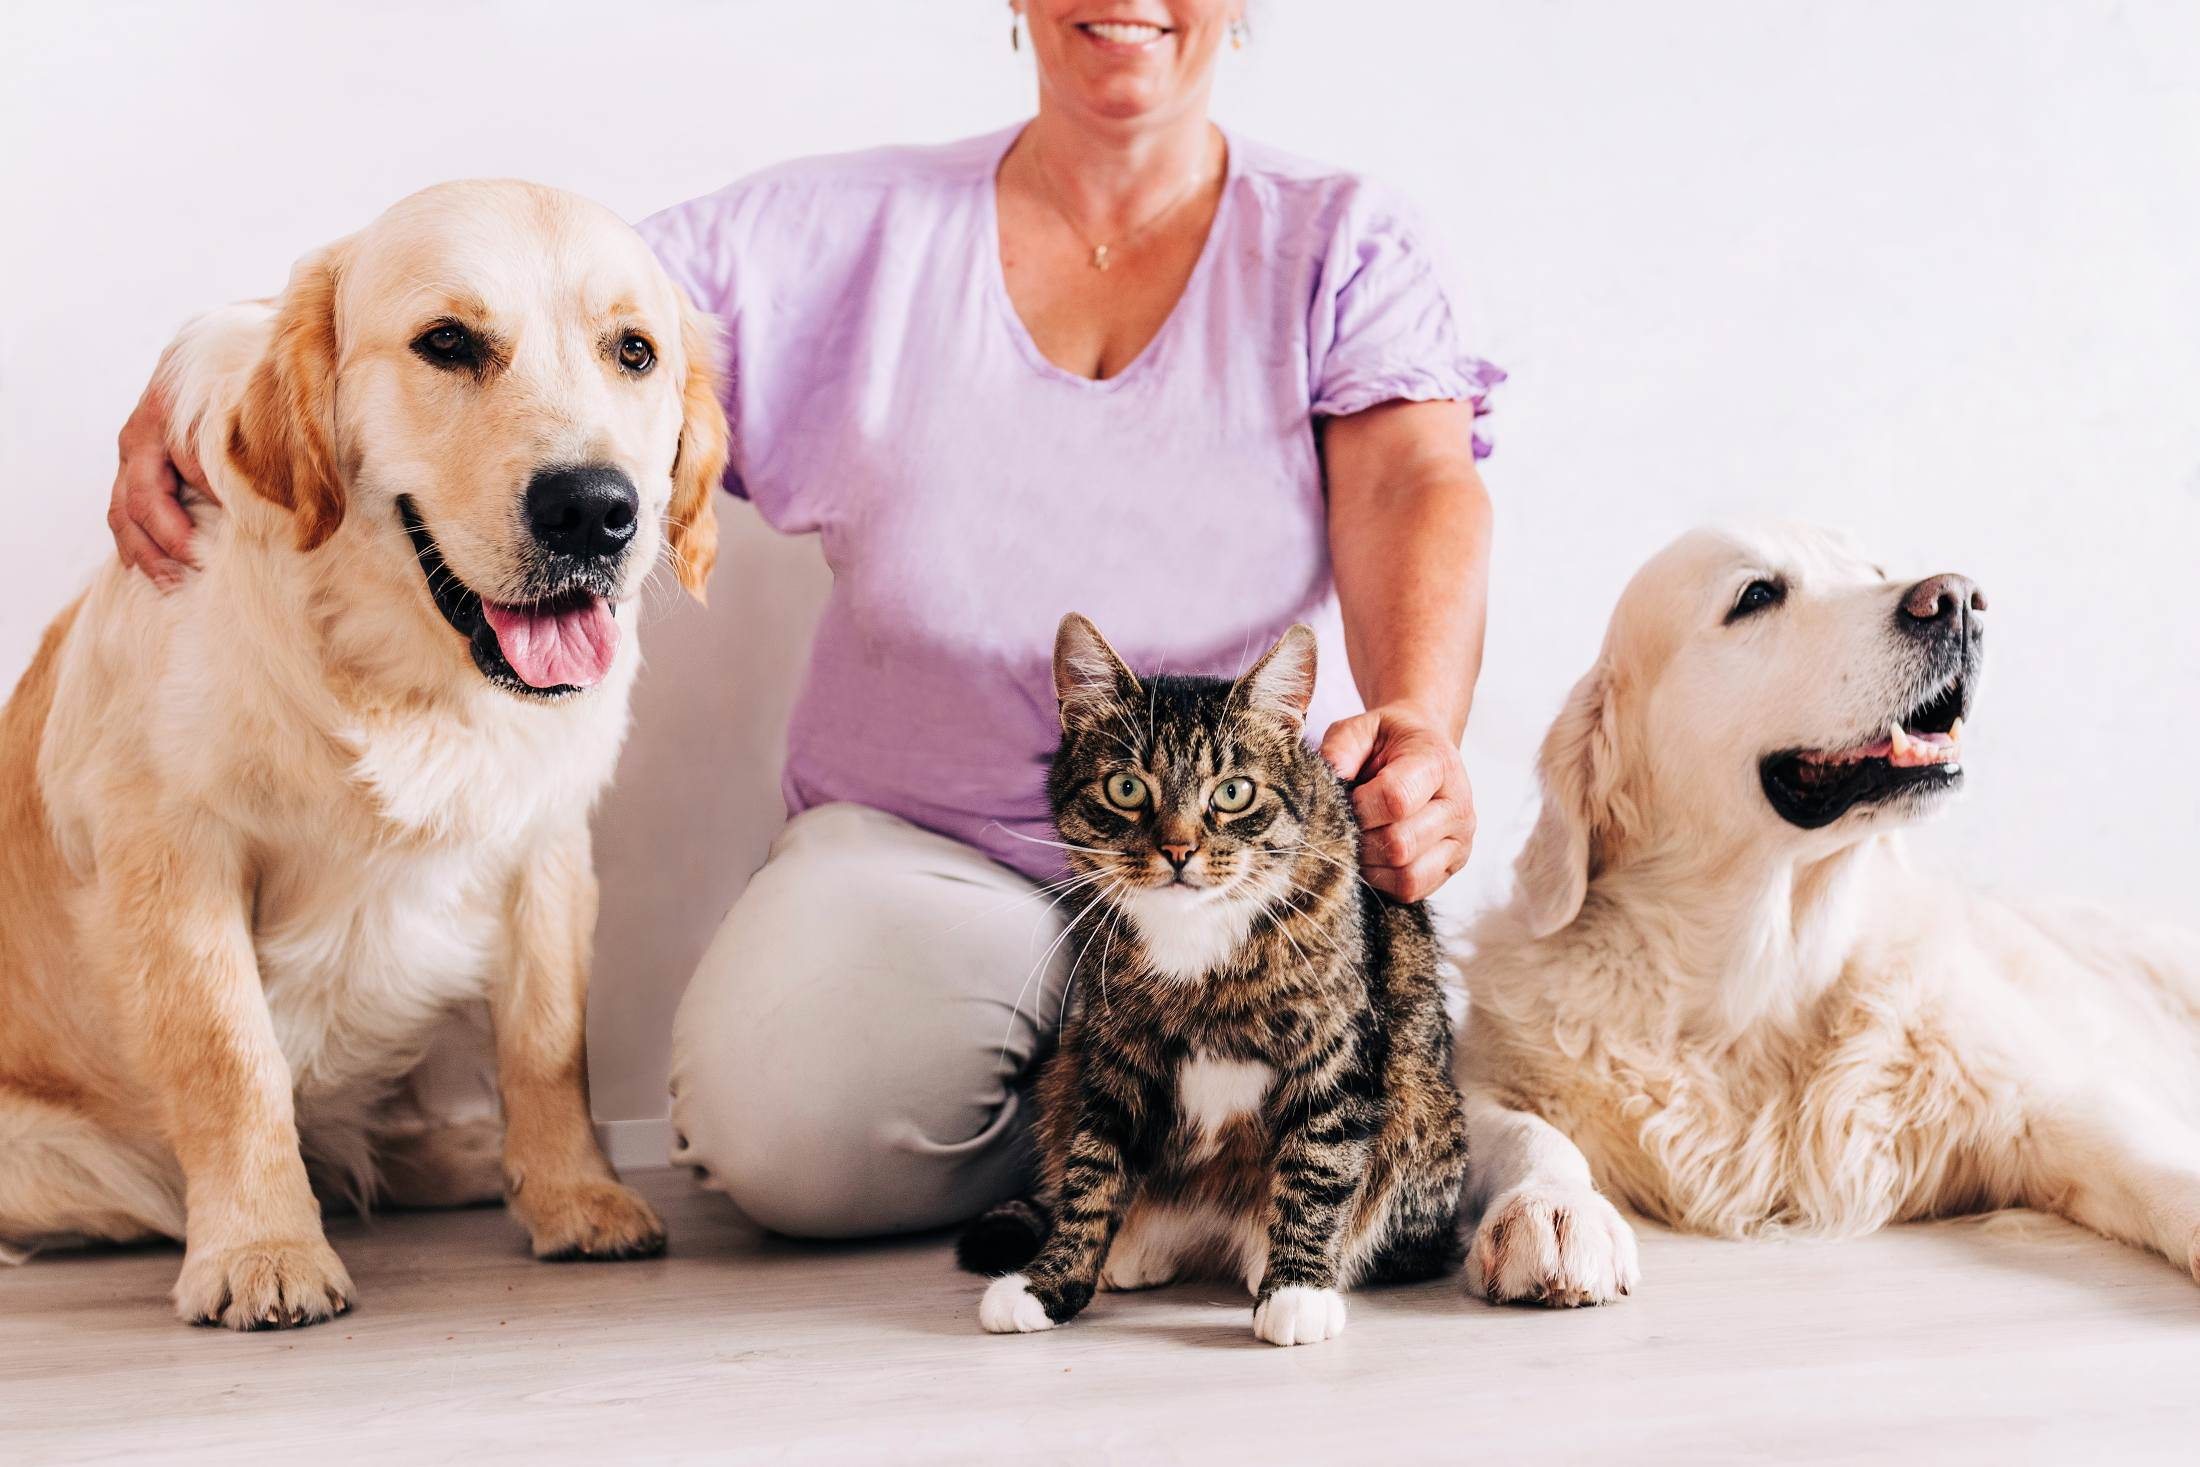 Two dogs and a cat with their owner on the floor